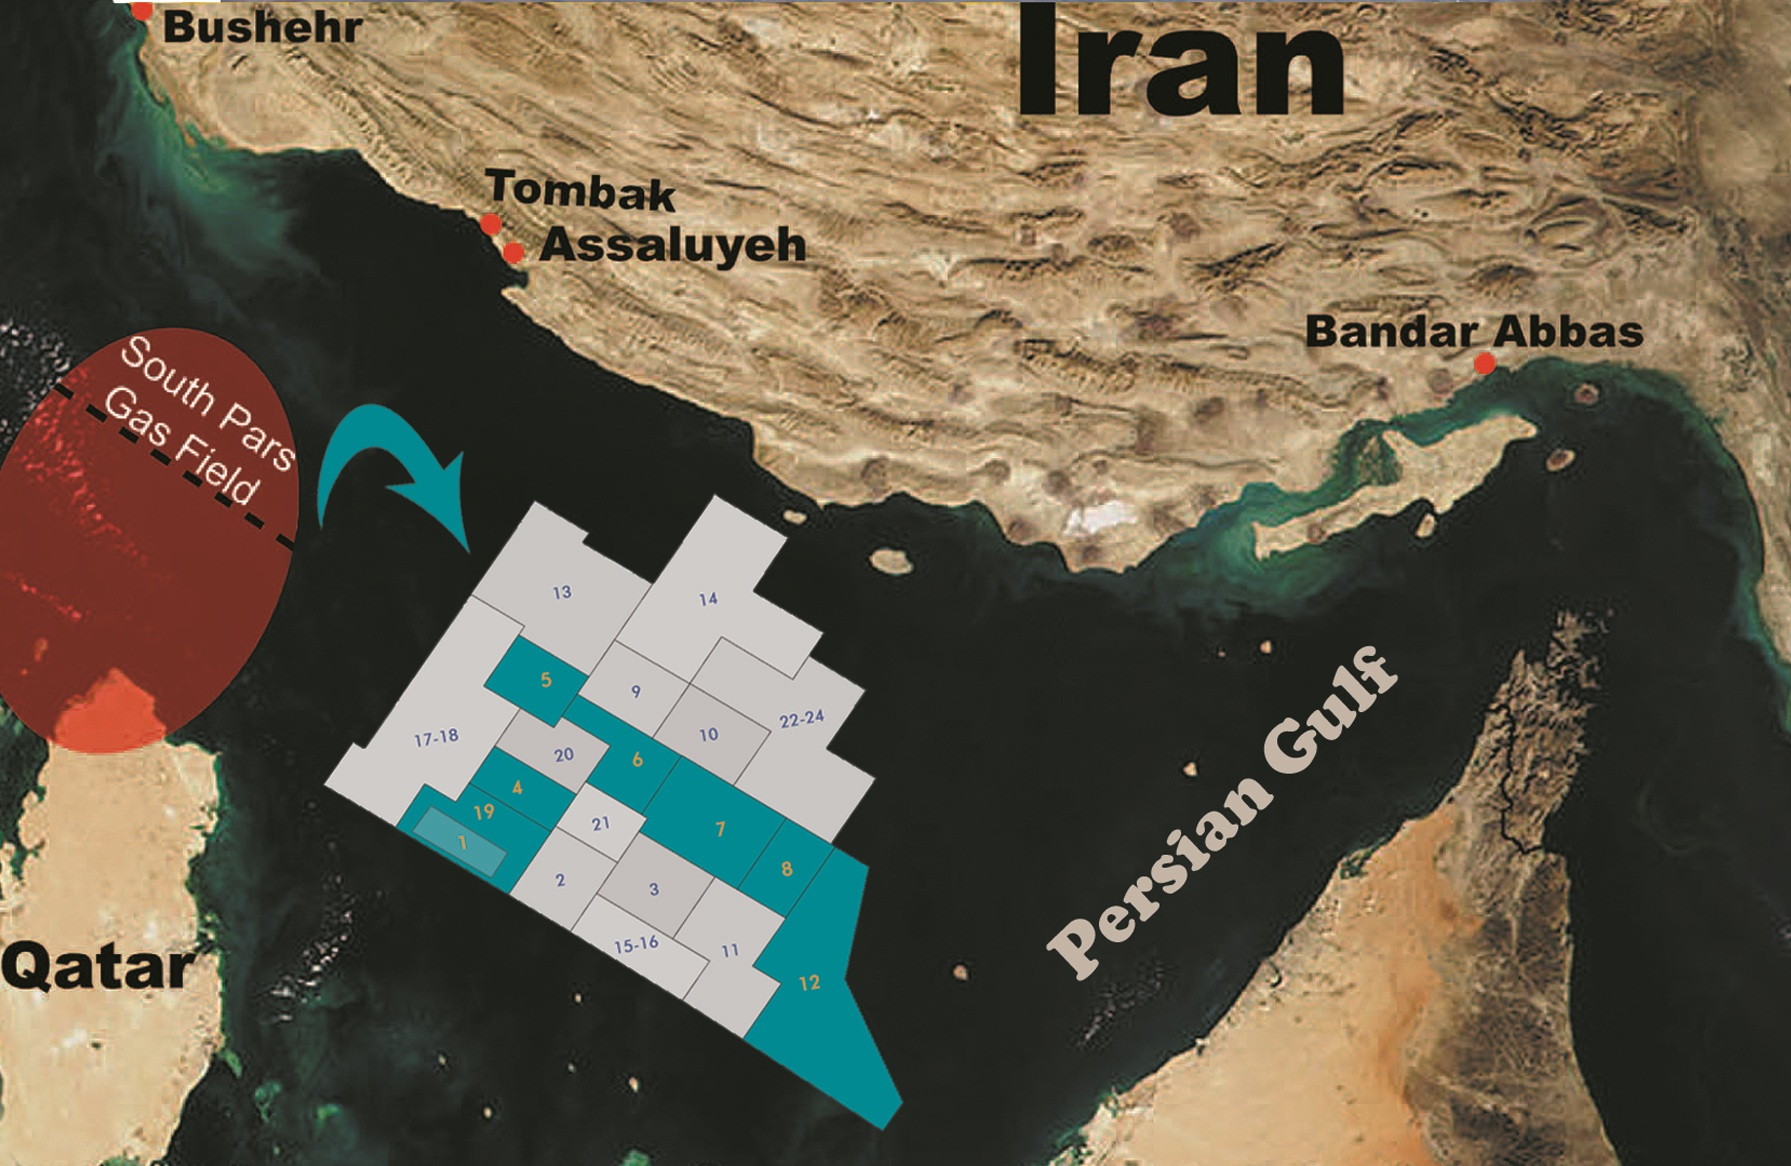 Qatar Iran A French Gas Company And One Natural Gas Field